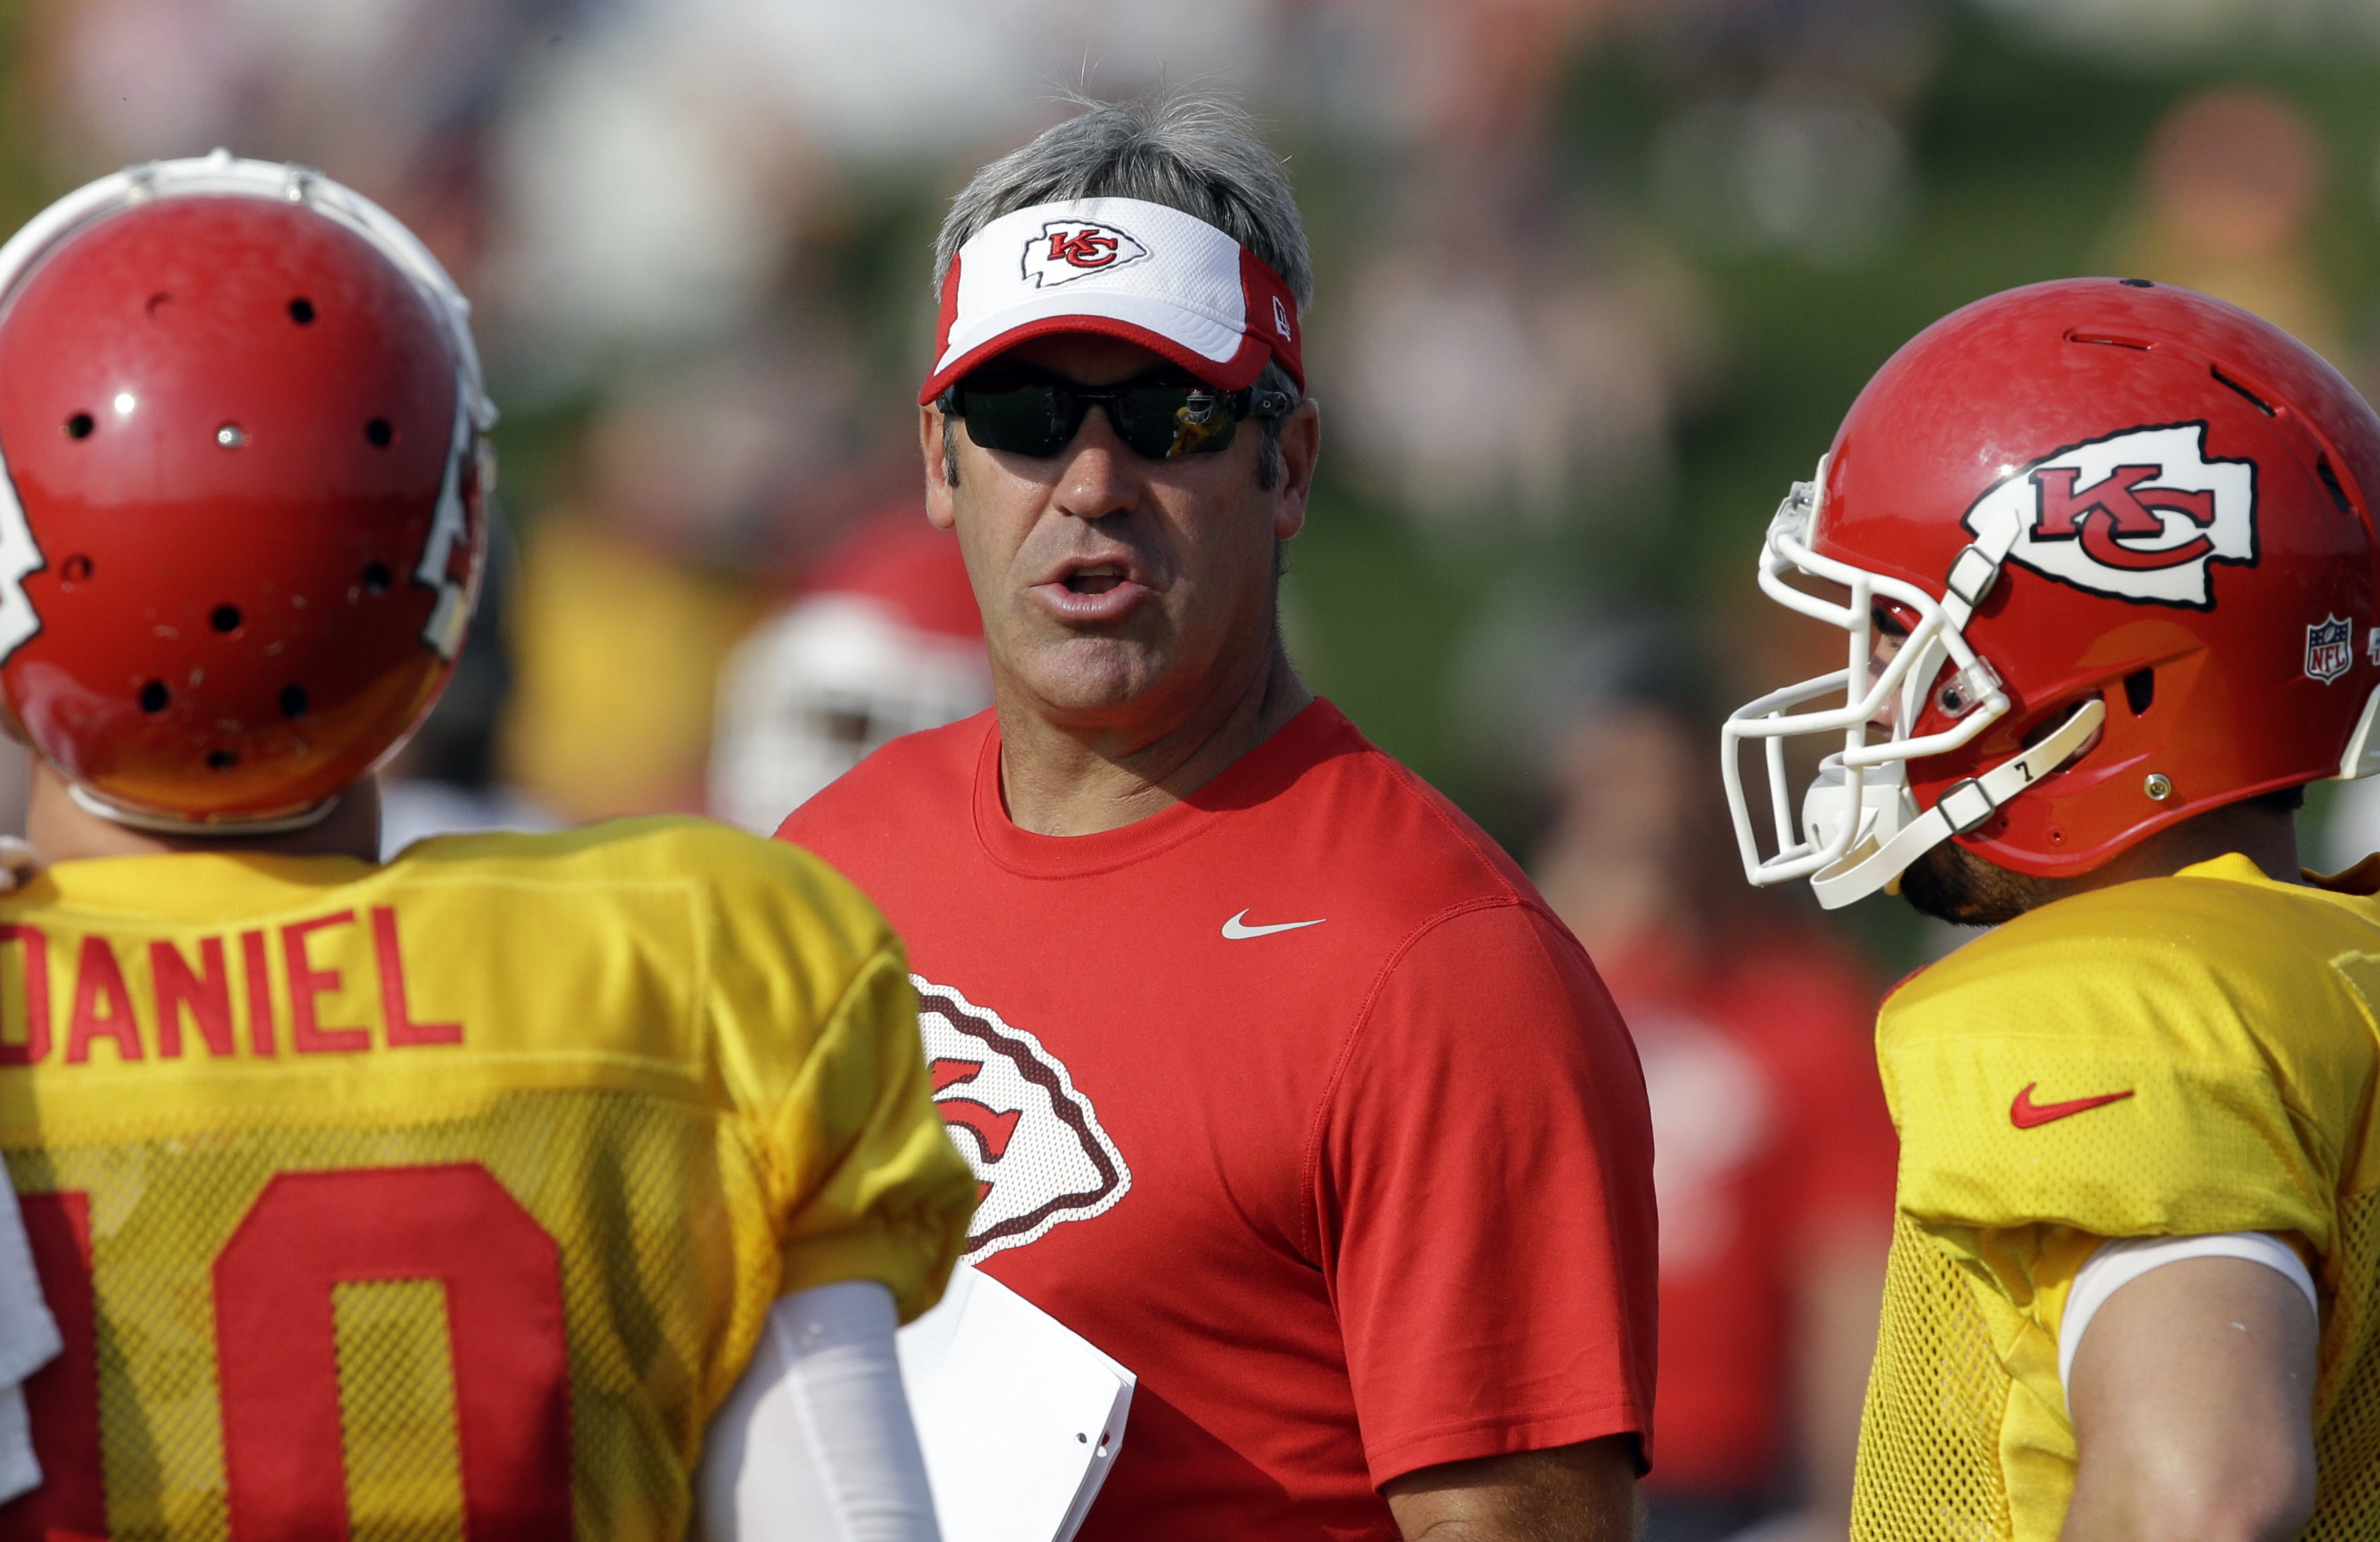 FILE - In this Aug. 4, 2015, file photo, Kansas City Chiefs offensive coordinator Doug Pederson, center, attends NFL football training camp in St. Joseph, Mo. Pederson has accepted an offer to become the Philadelphia Eagles coach, a person with knowledge